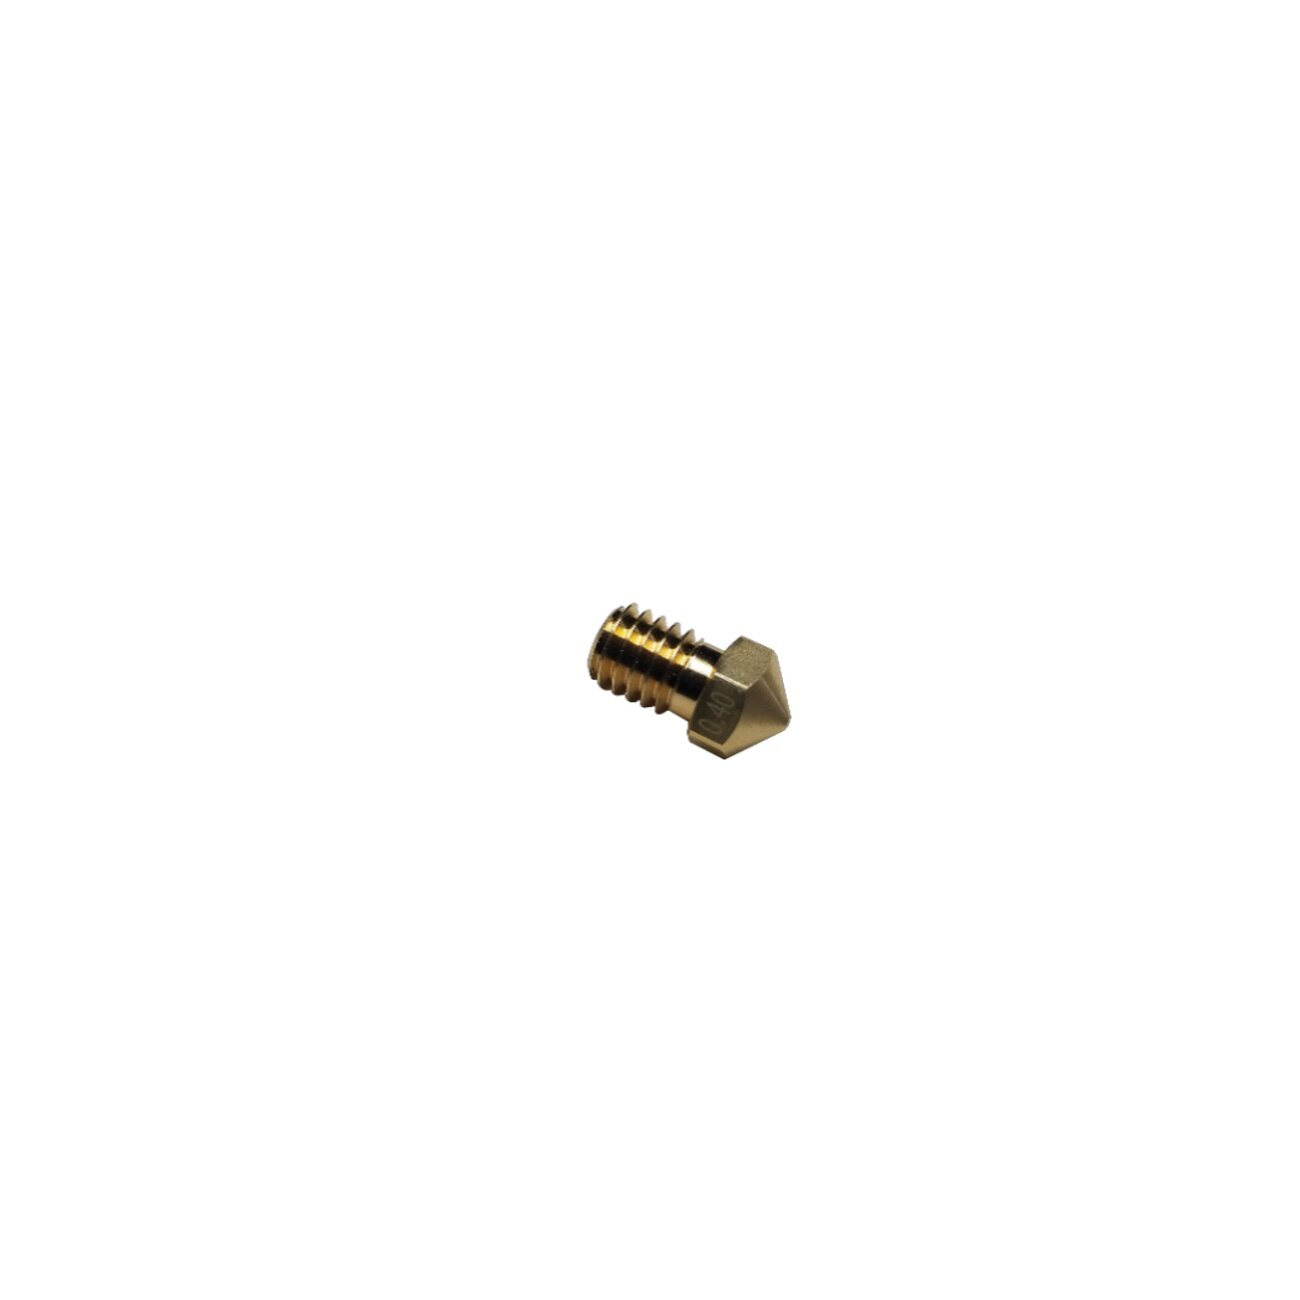 Nozzle-Brass 0,25mm